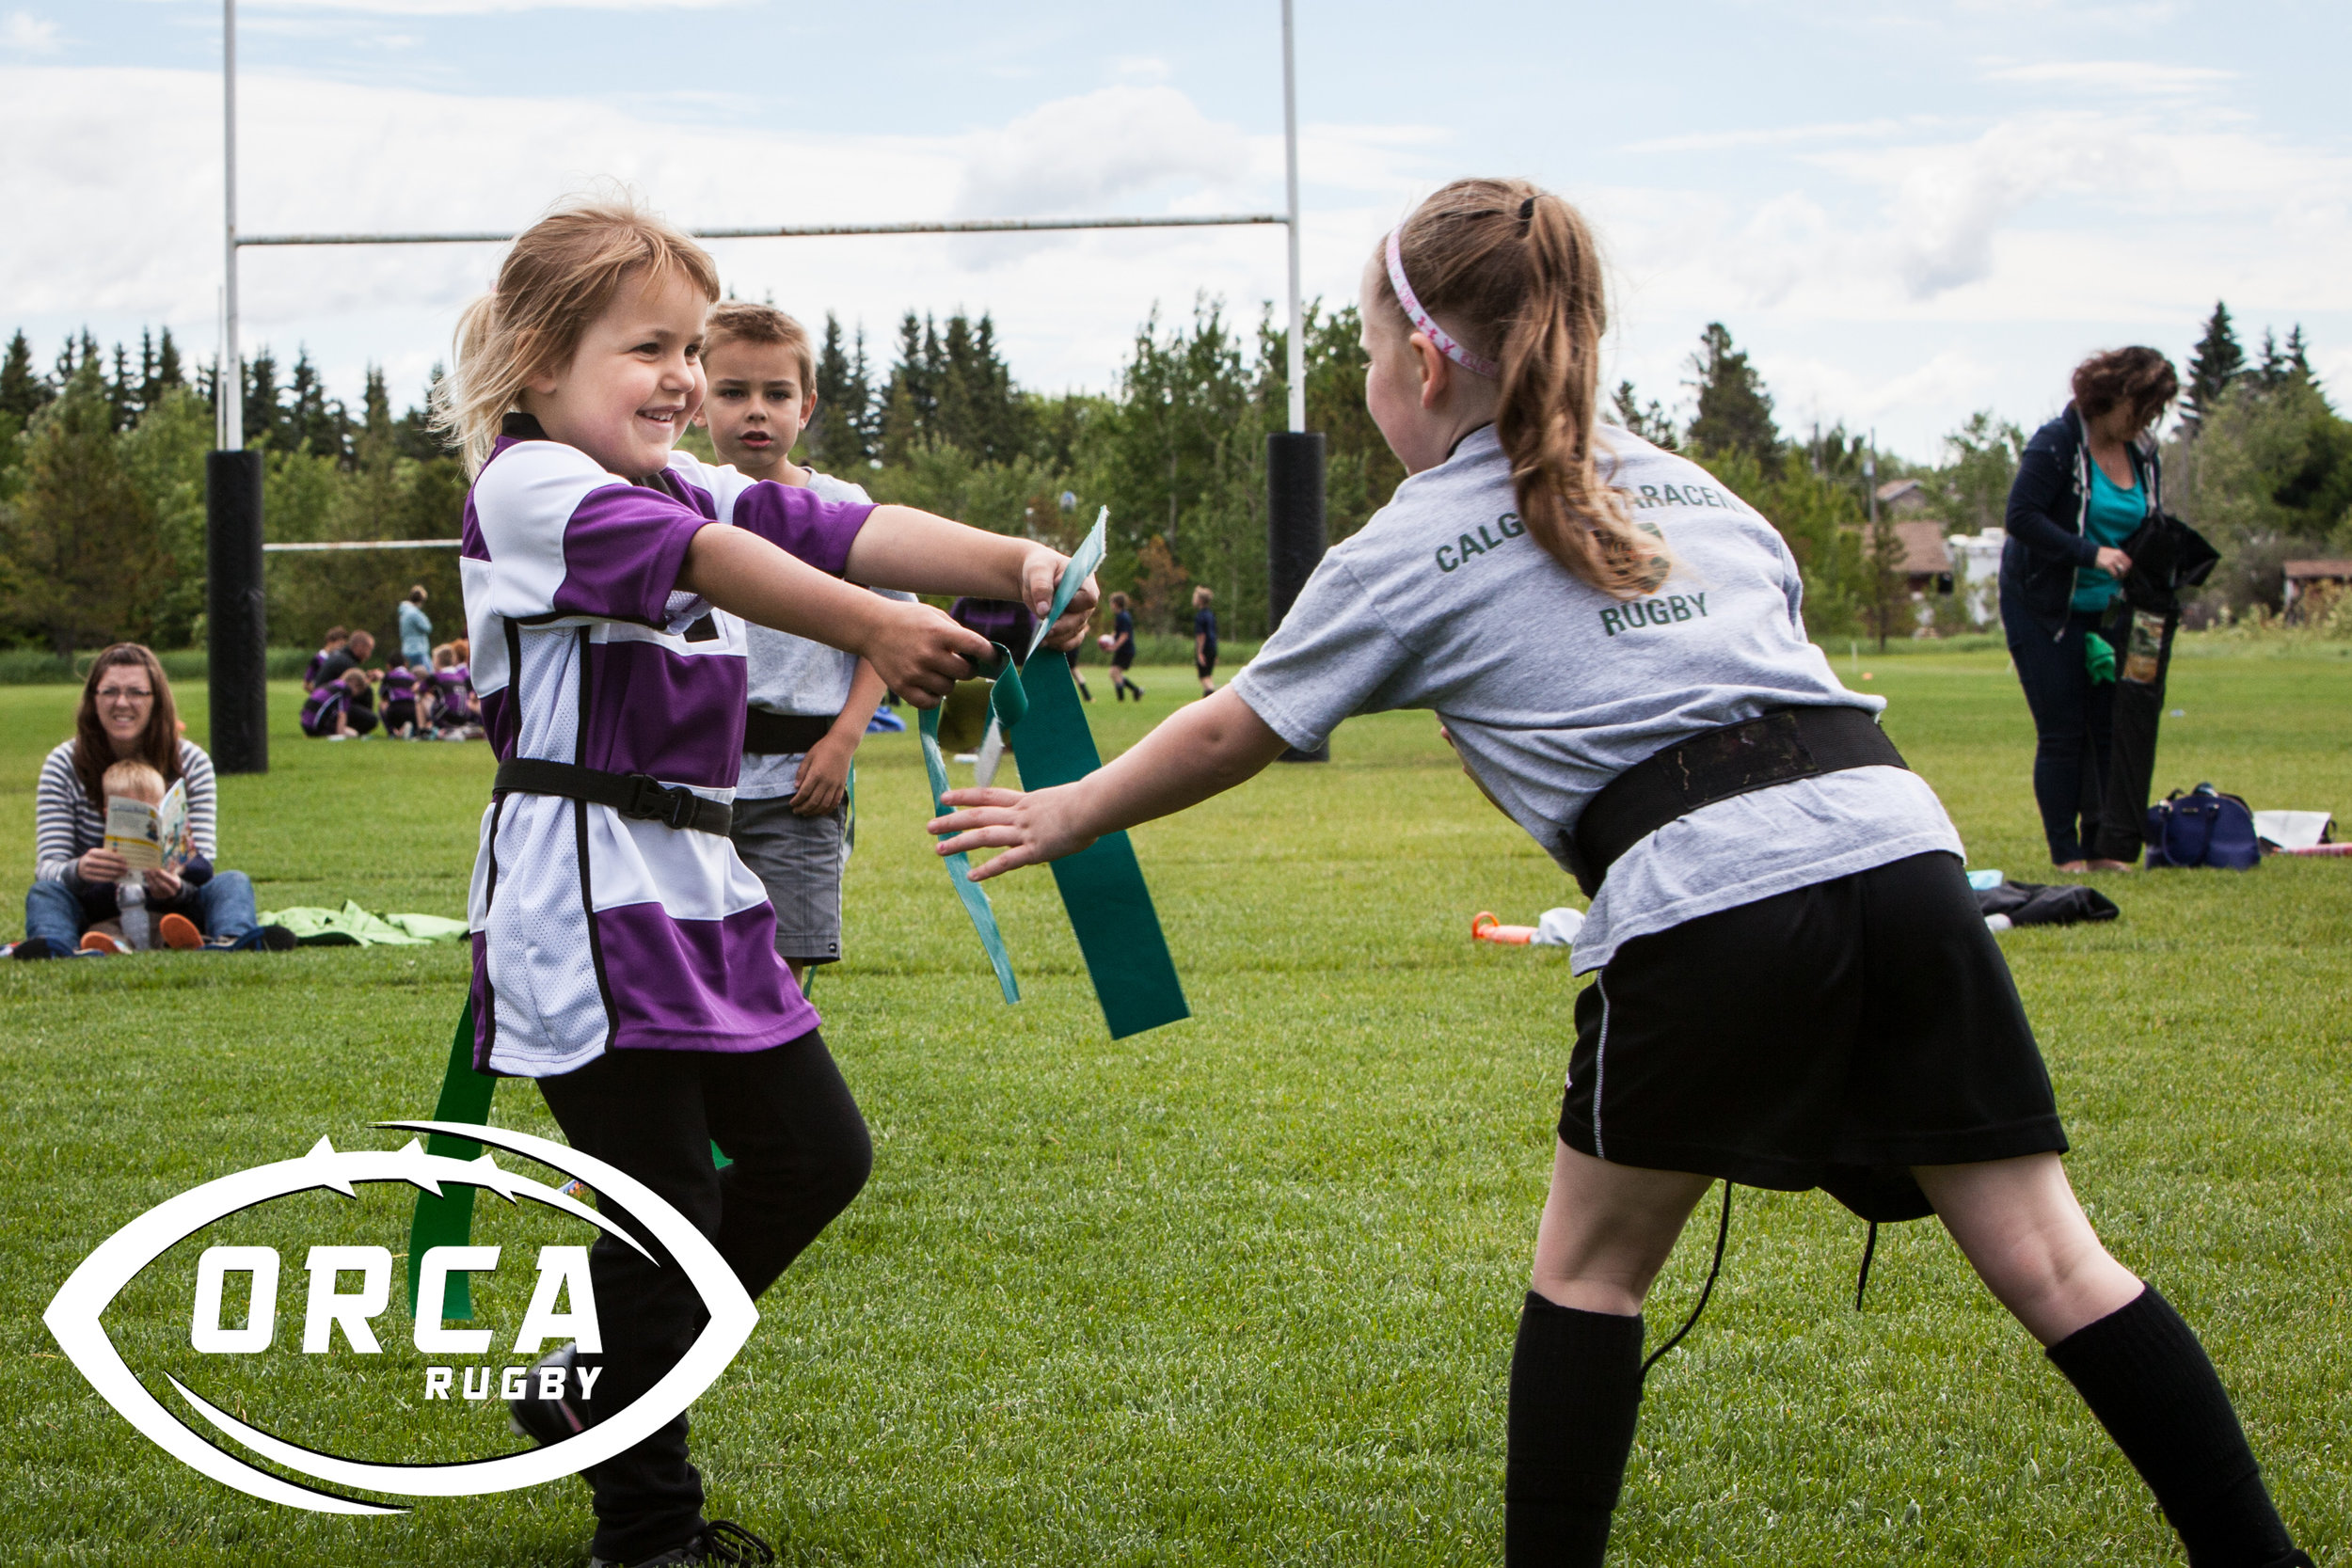 Community Rugby - Community rugby programs provide introduction level opportunity for new players to play rugby in a safe, fun and affordable mannerLearn More